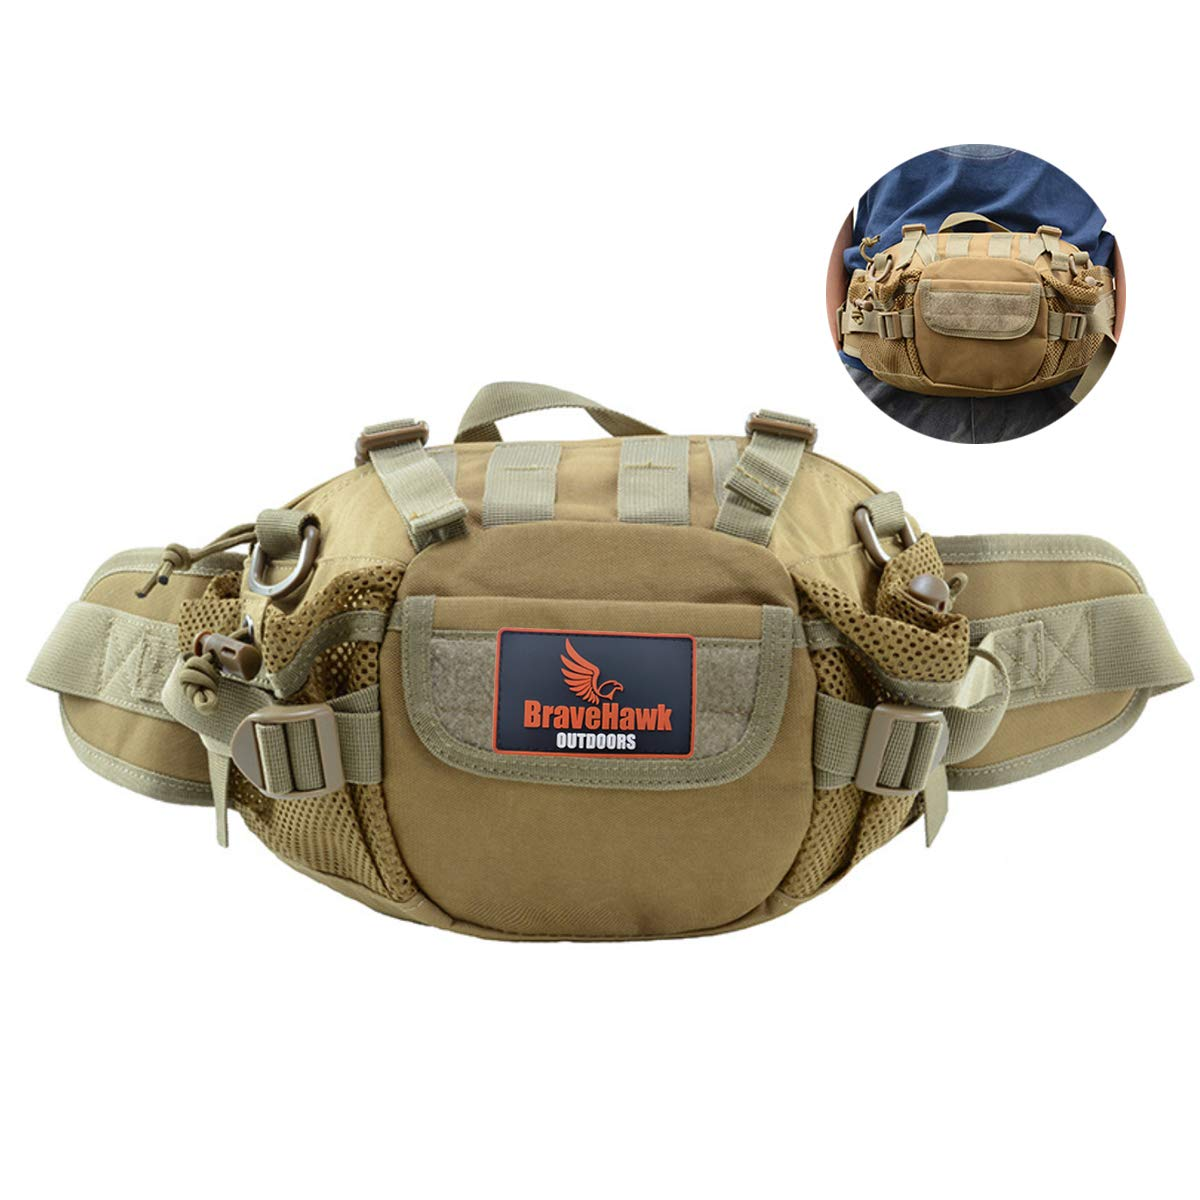 BraveHawk OUTDOORS Tactical Waist Fanny Pack, 900D Military Nylon Oxford Water Resistant Multipurpose MOLLE Hip Belt Bag Outdoor Hiking Bumbag with Shoulder Strap